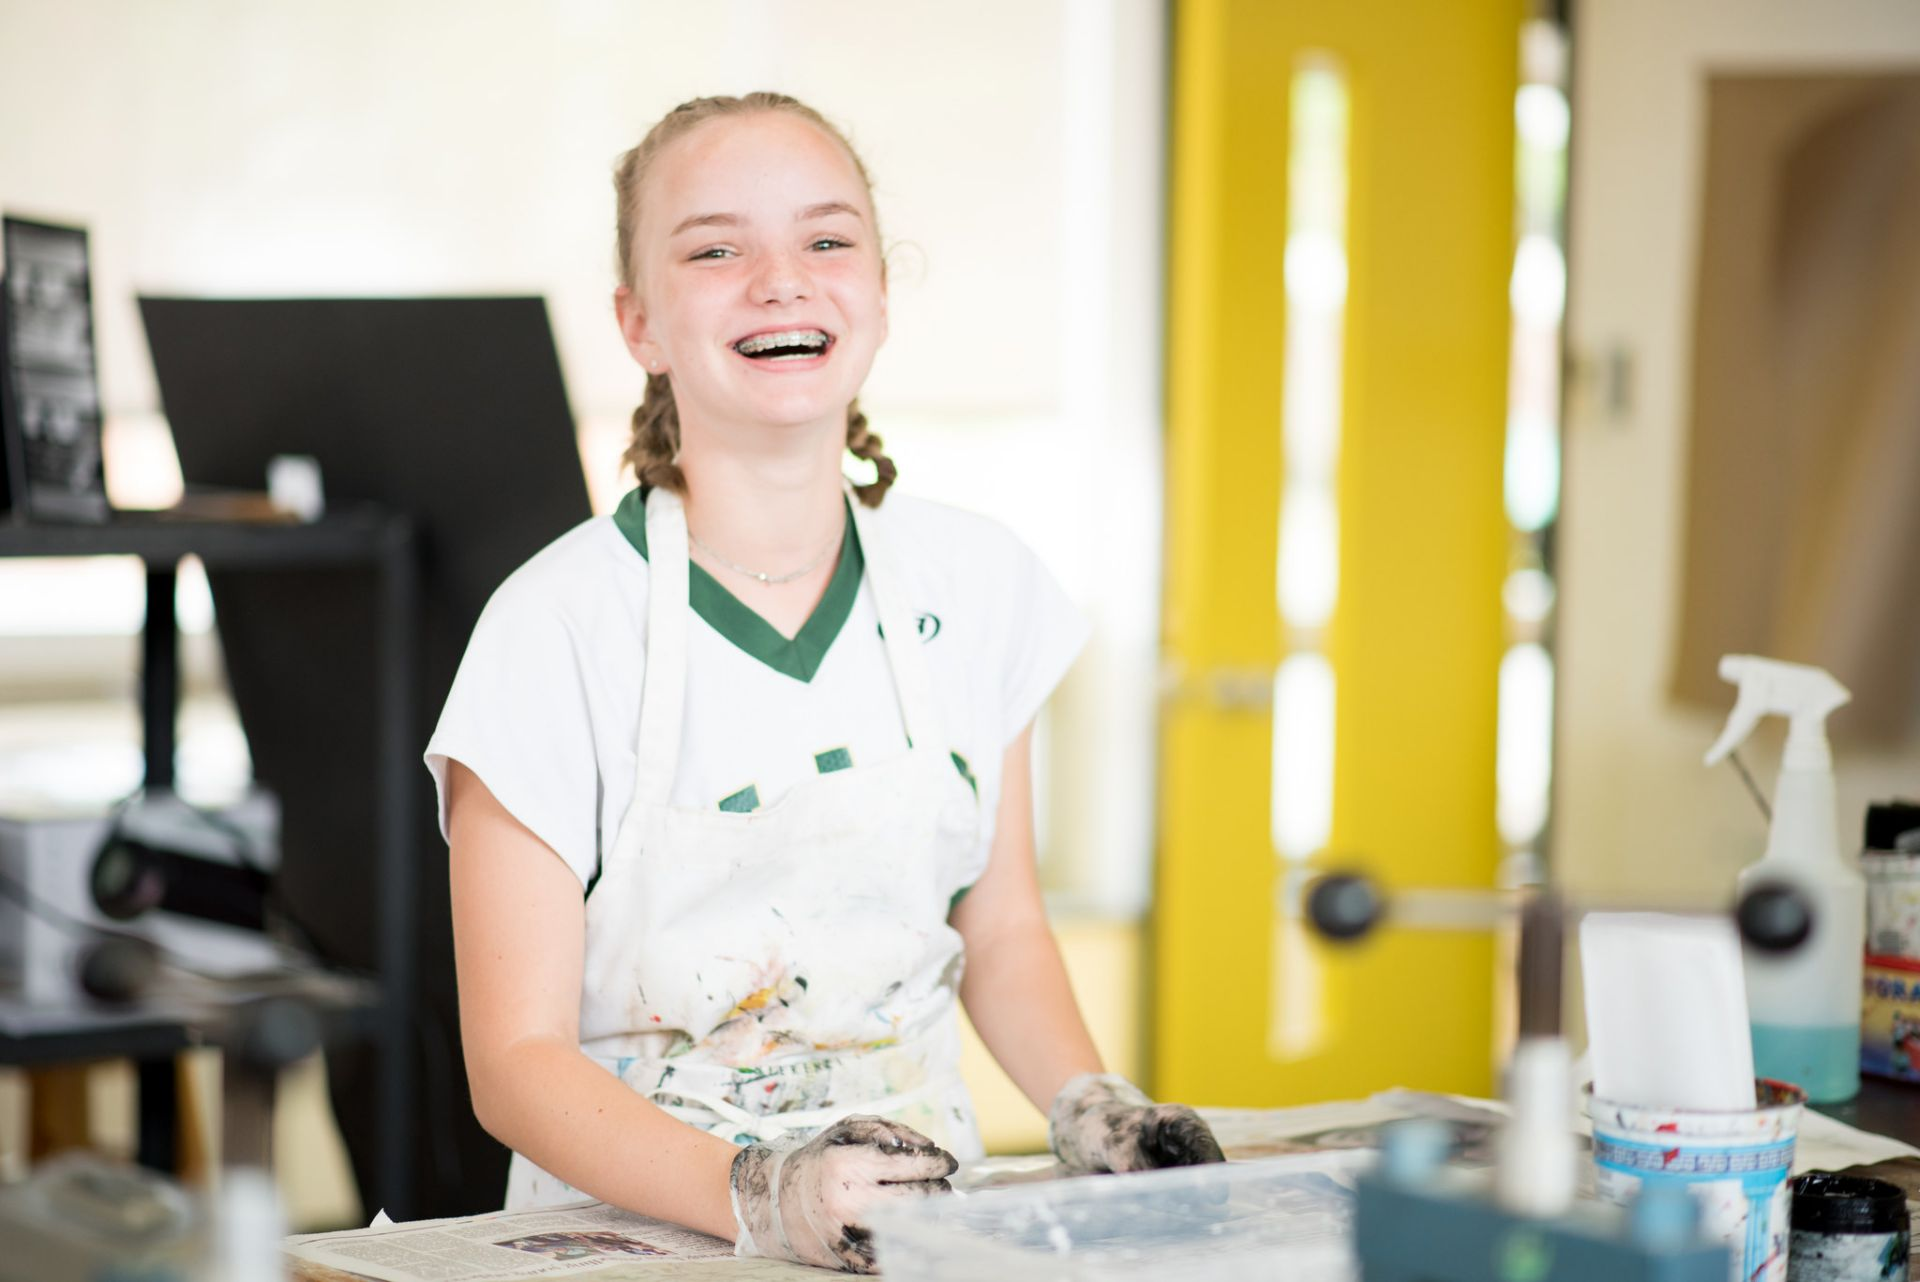 This is a photo of a high school student smiling in the art lab.